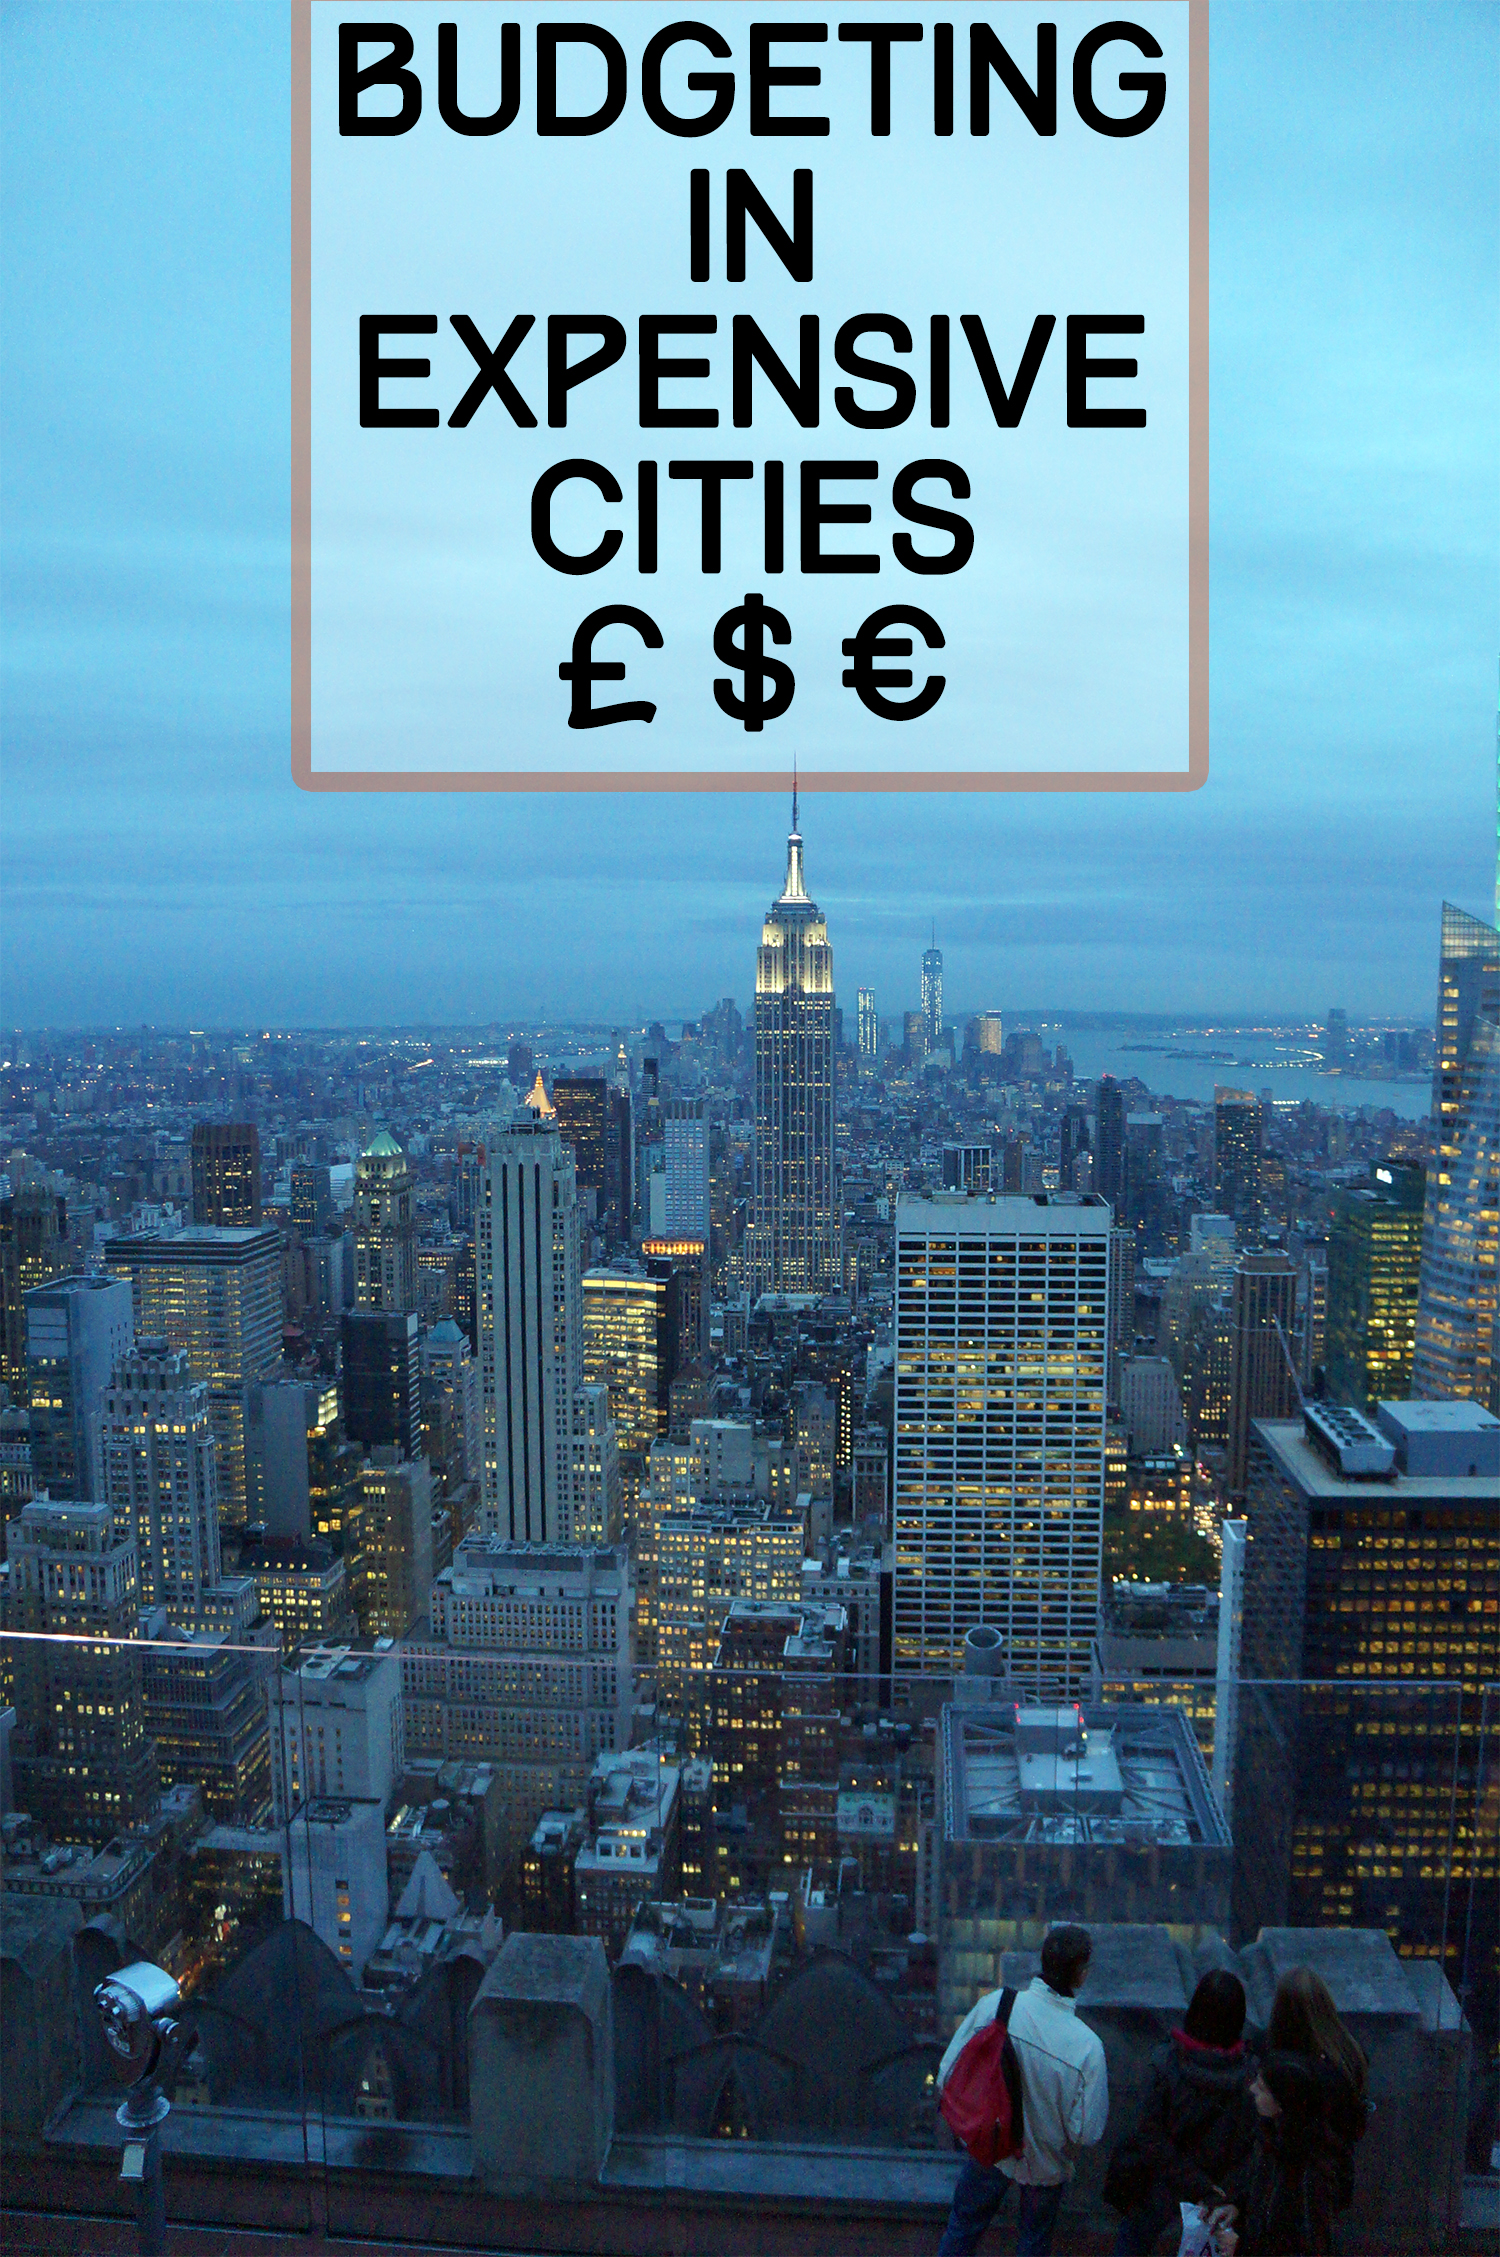 budgeting in expensive cities